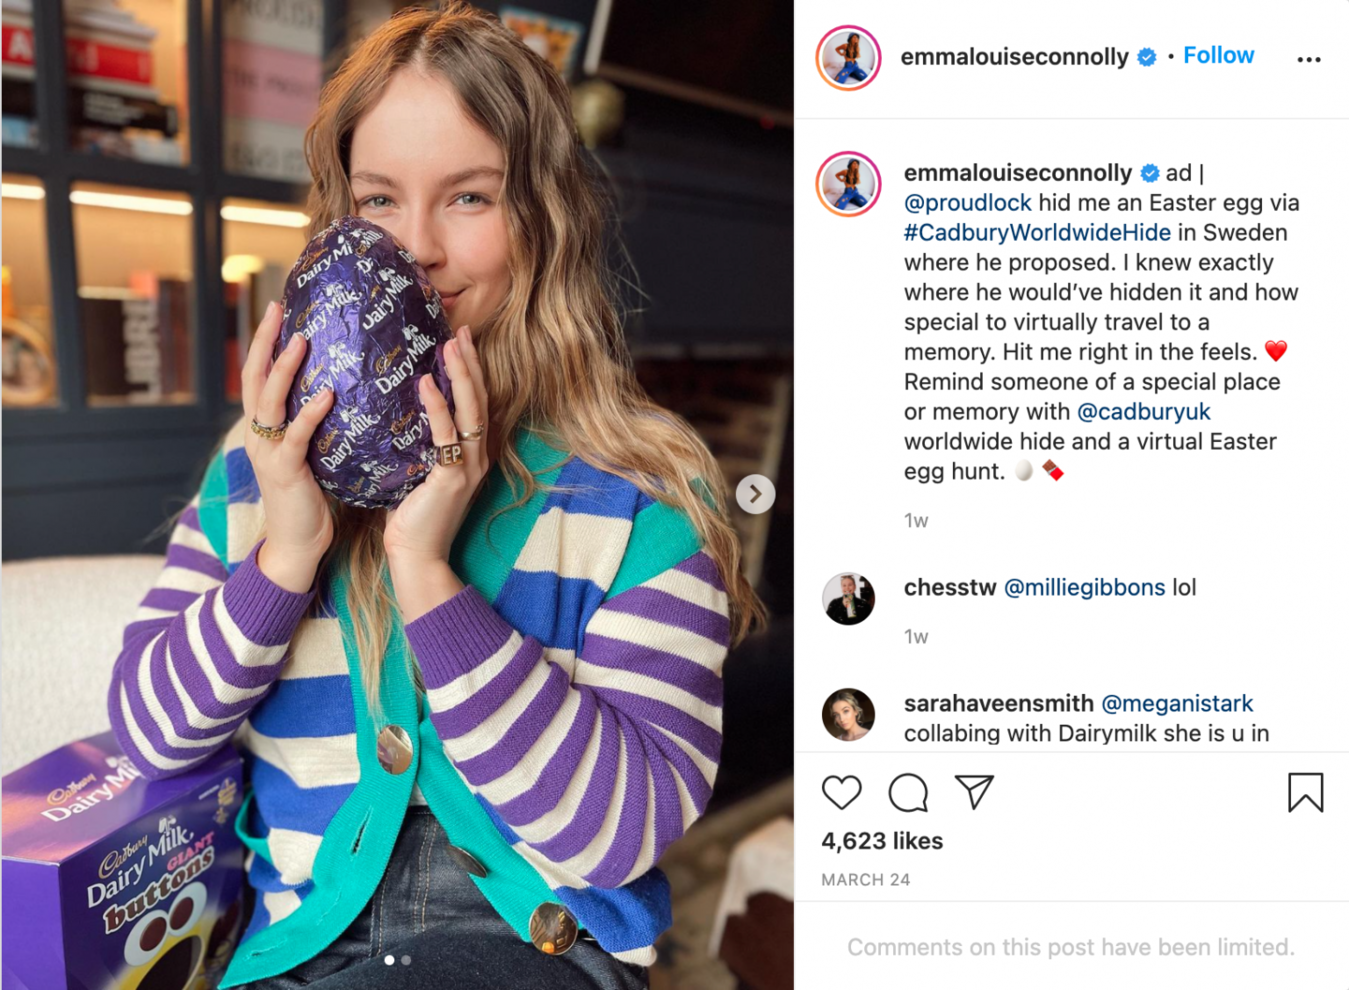 Example of user-generated content from Cadbury's 2021 easter egg hunt